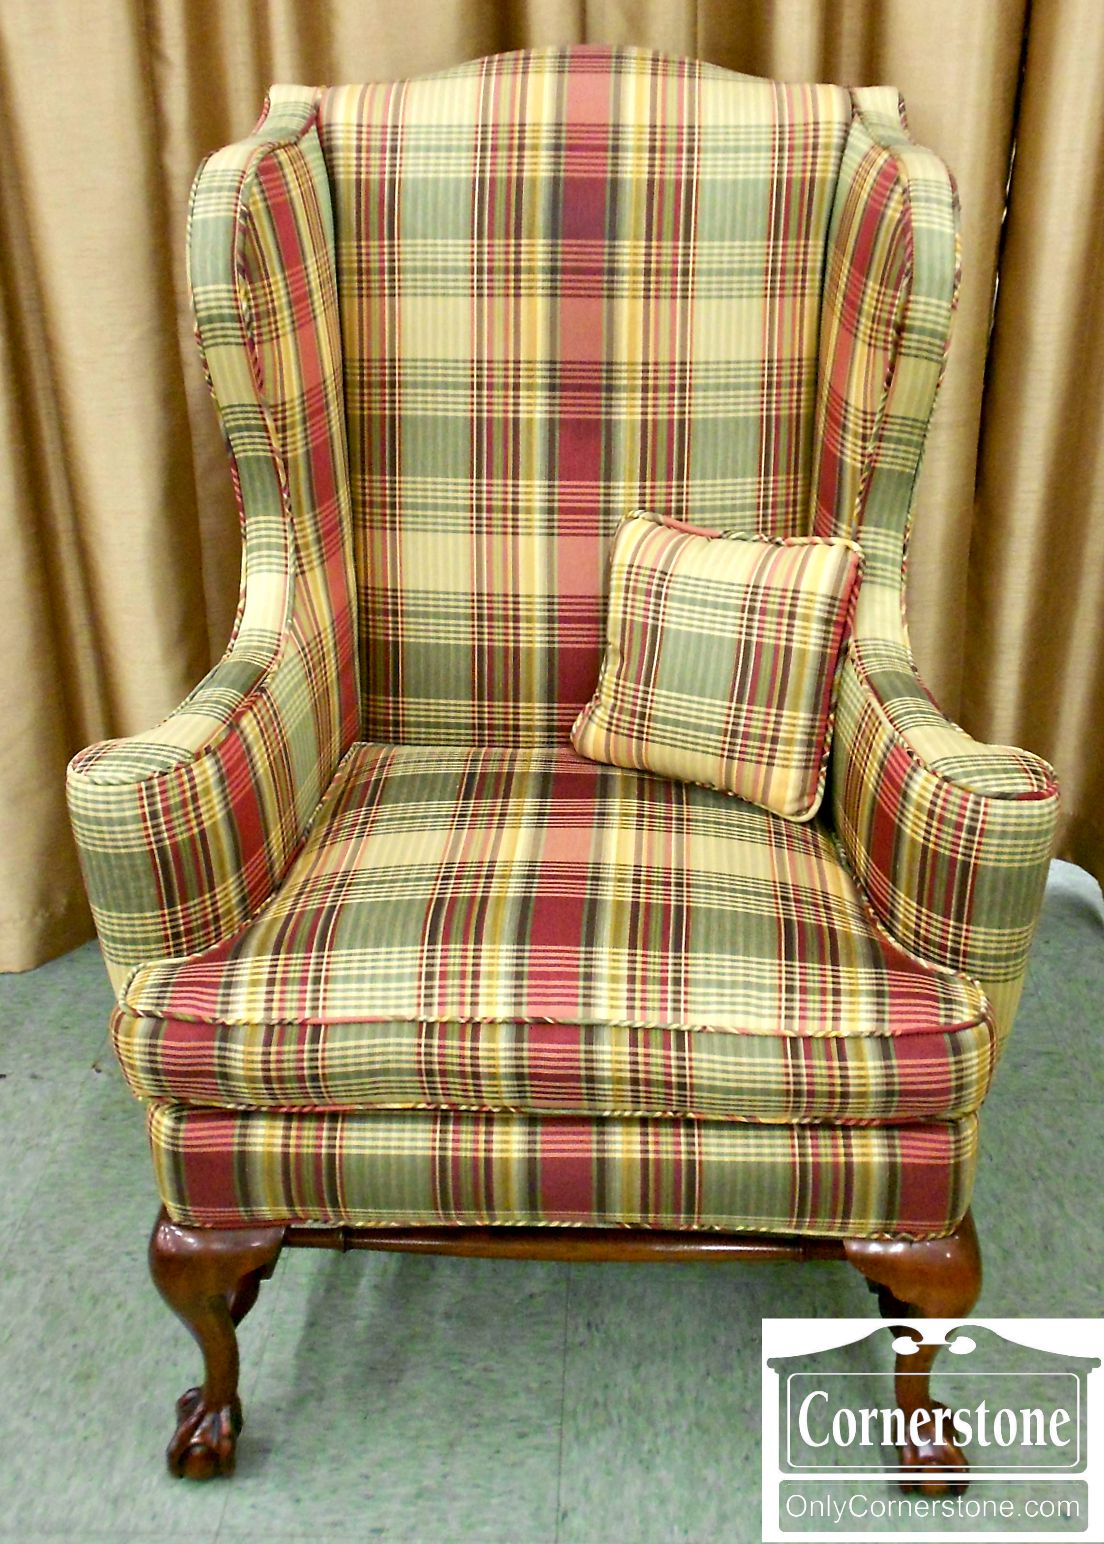 5208-831 Chippendale Ball and Claw Foot Upholstered Wing Chair